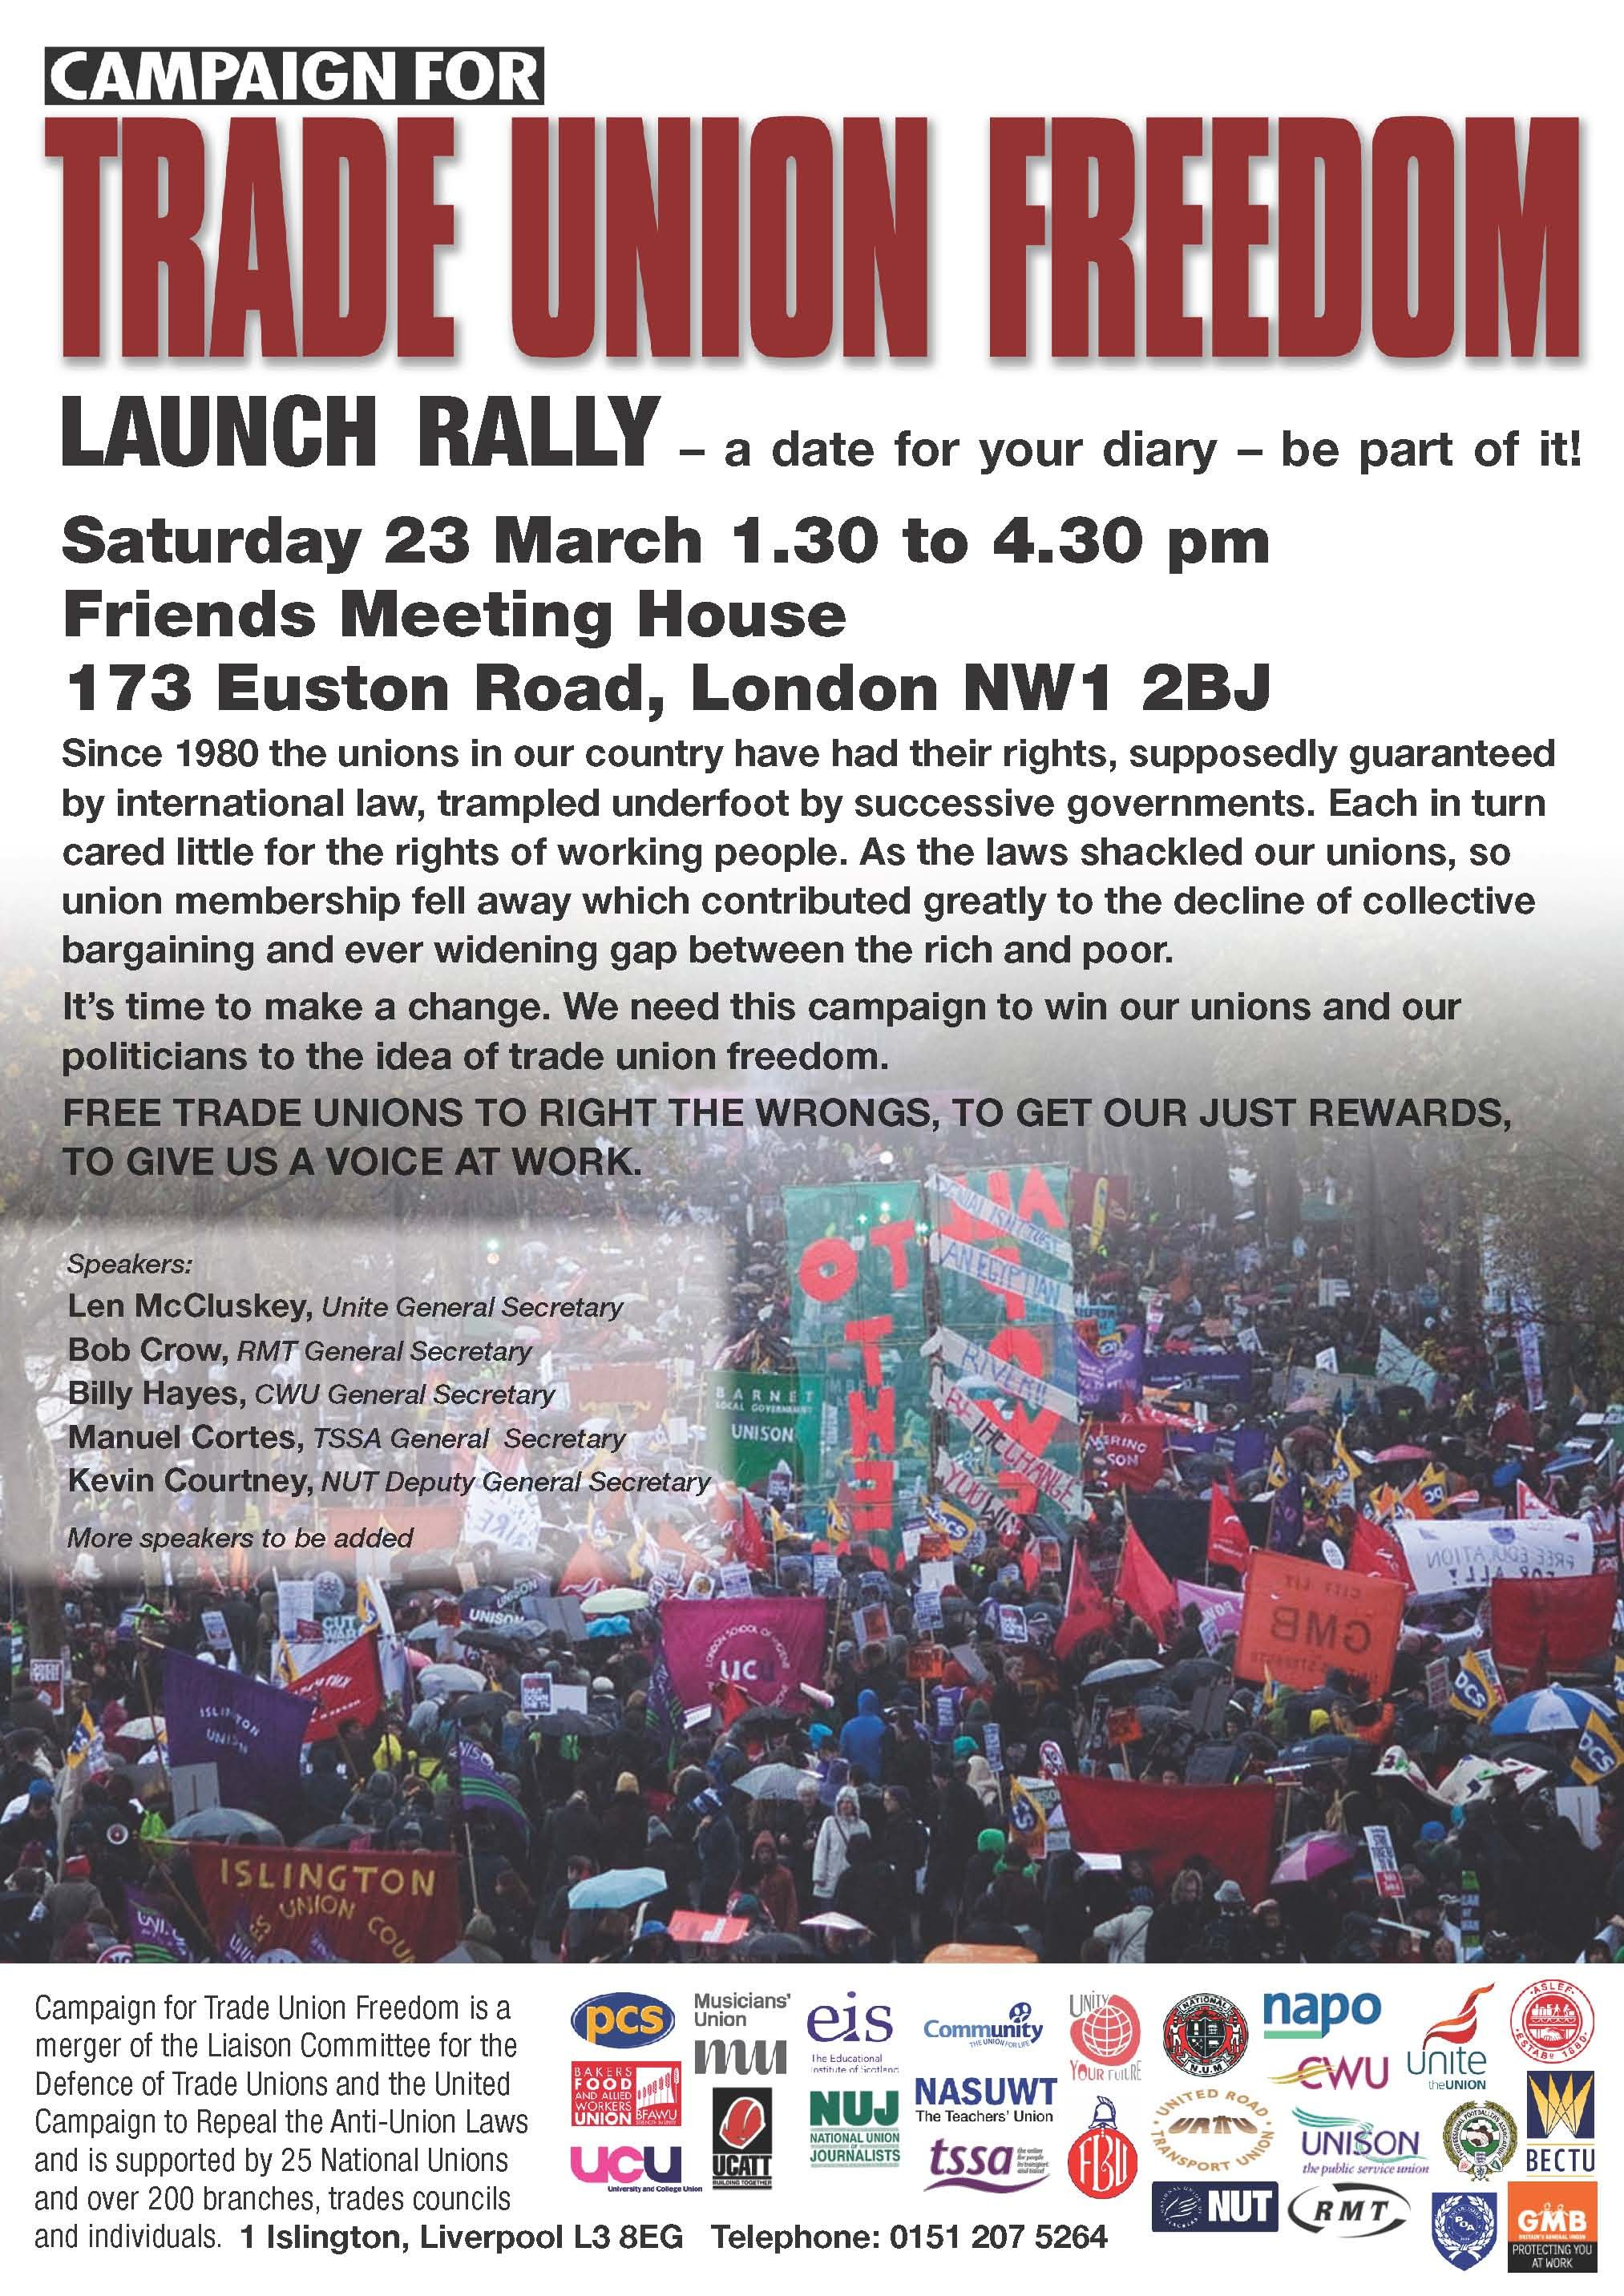 Unite are fully behind the new campaign for Trade Union freedom in the UK - launch rally 23rd March